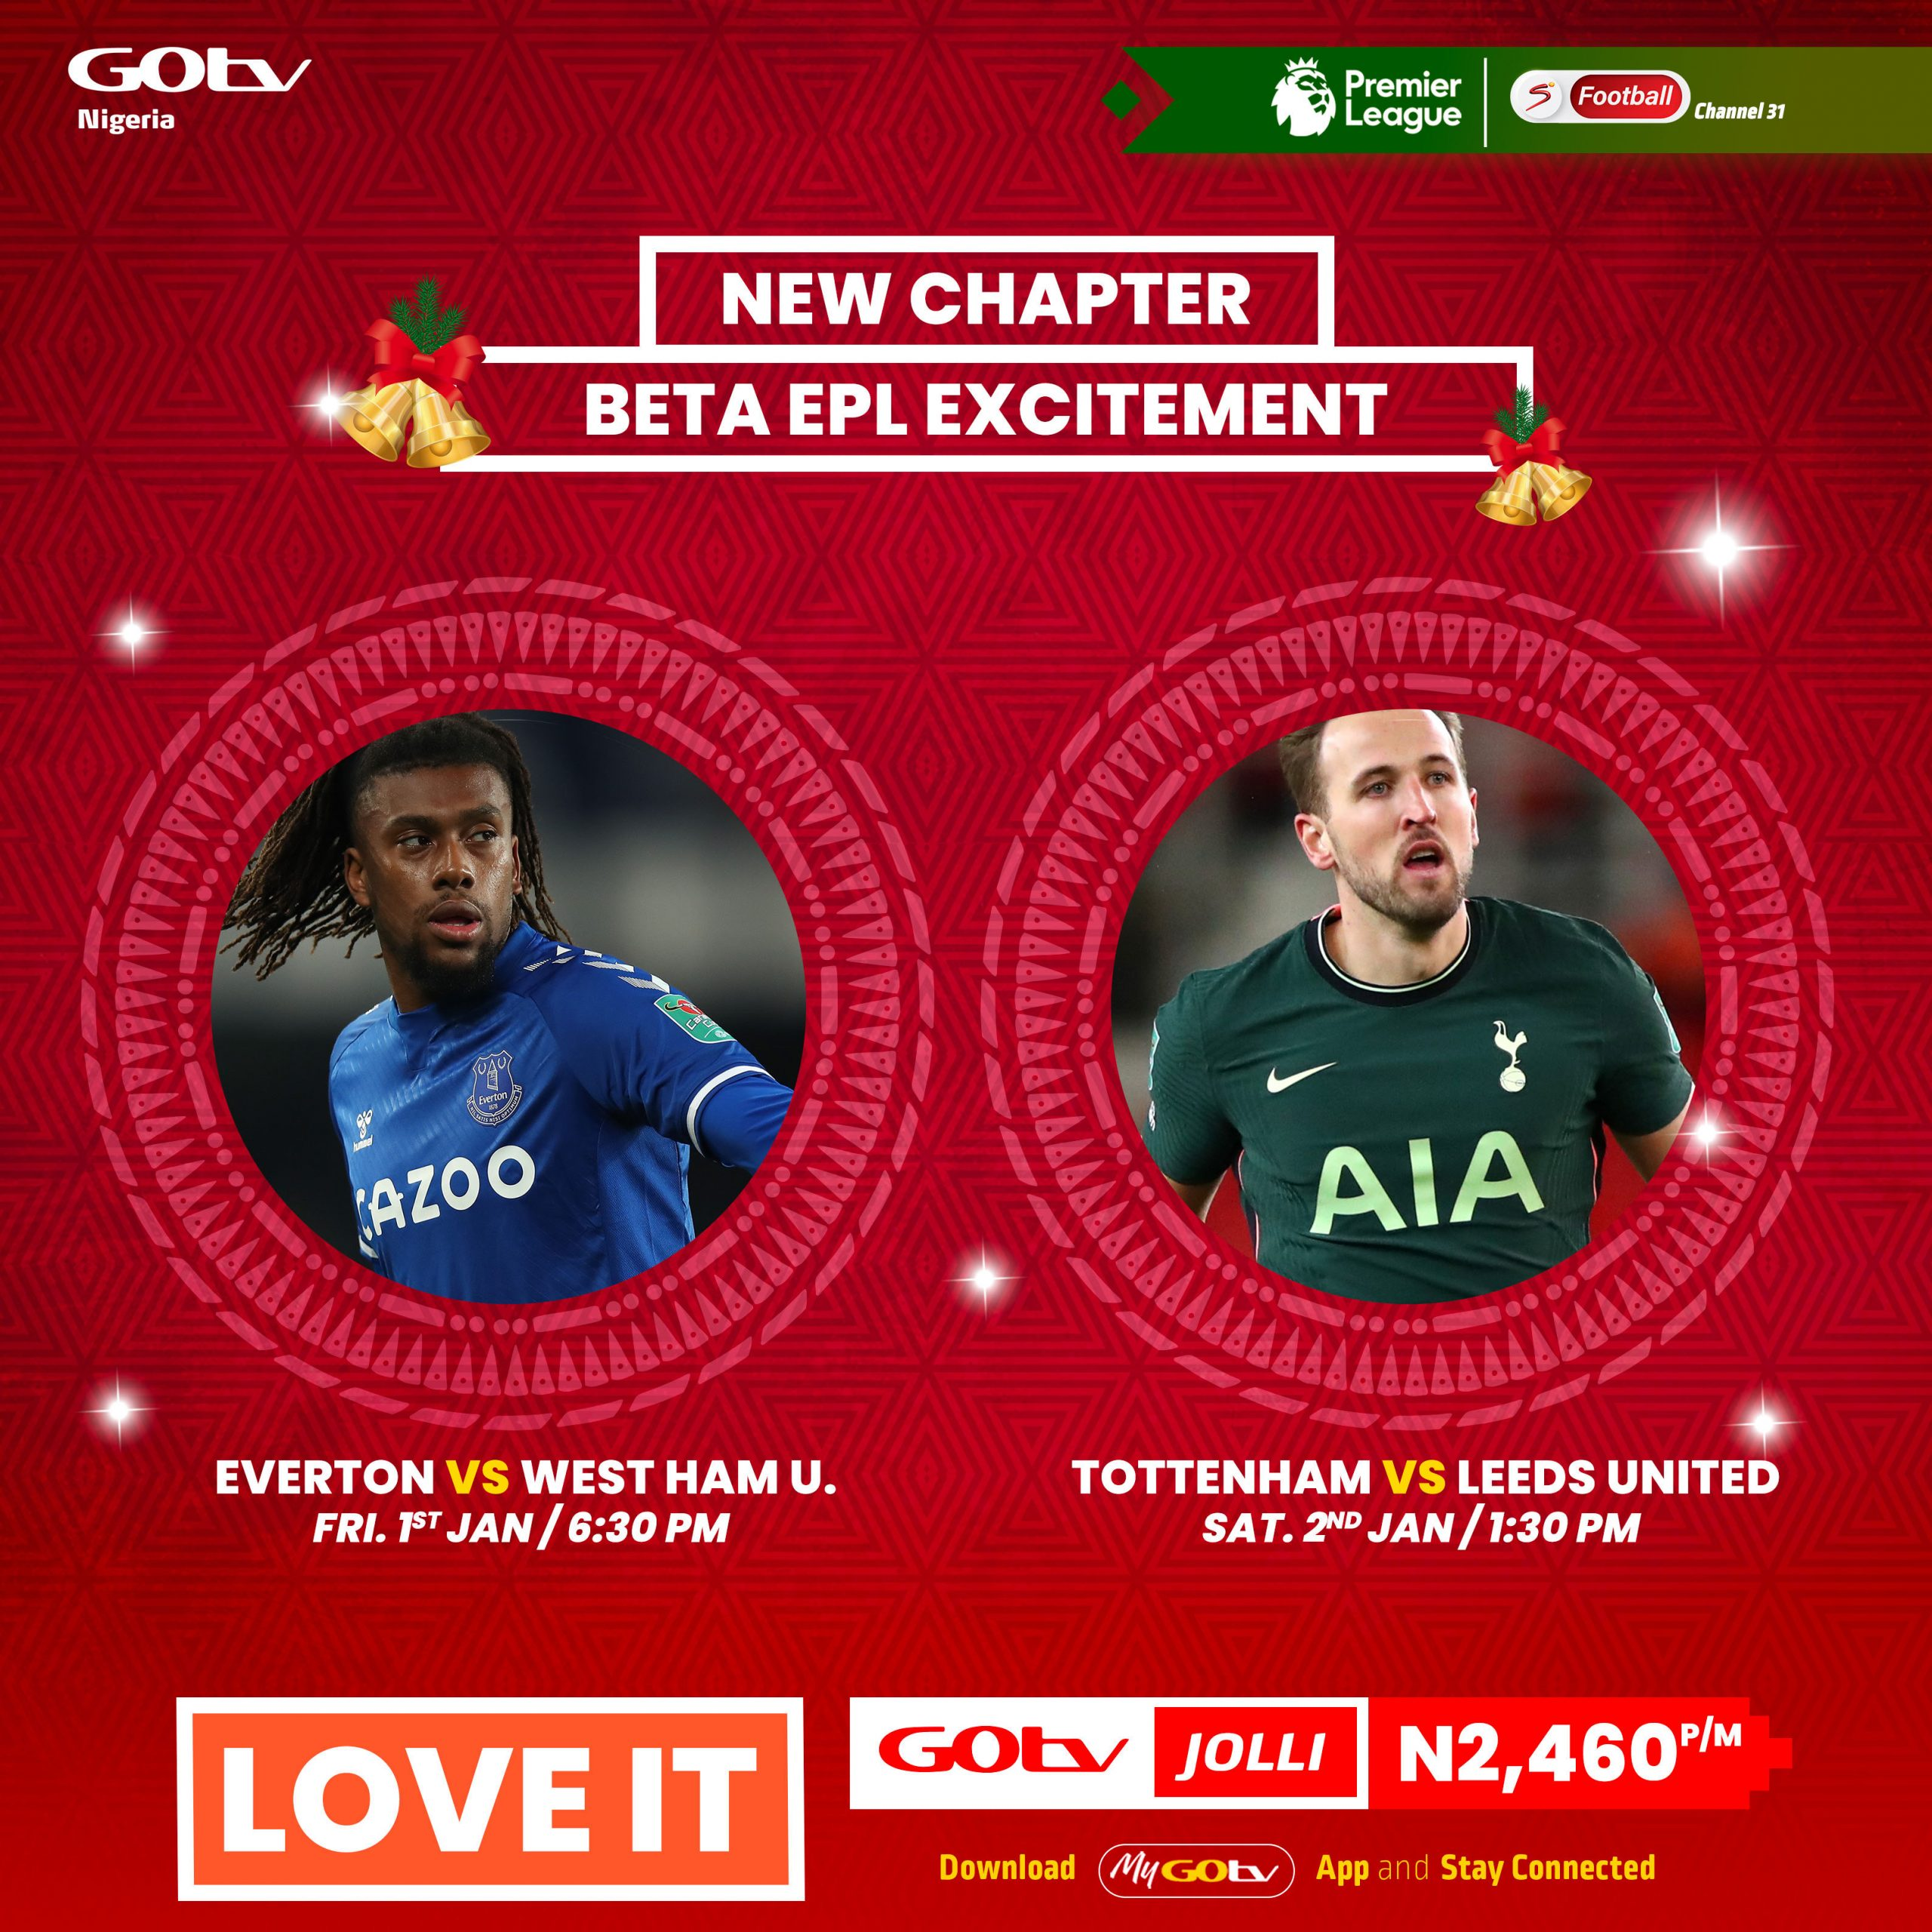 Enjoy Breath Taking Football Action On GOtv This Season